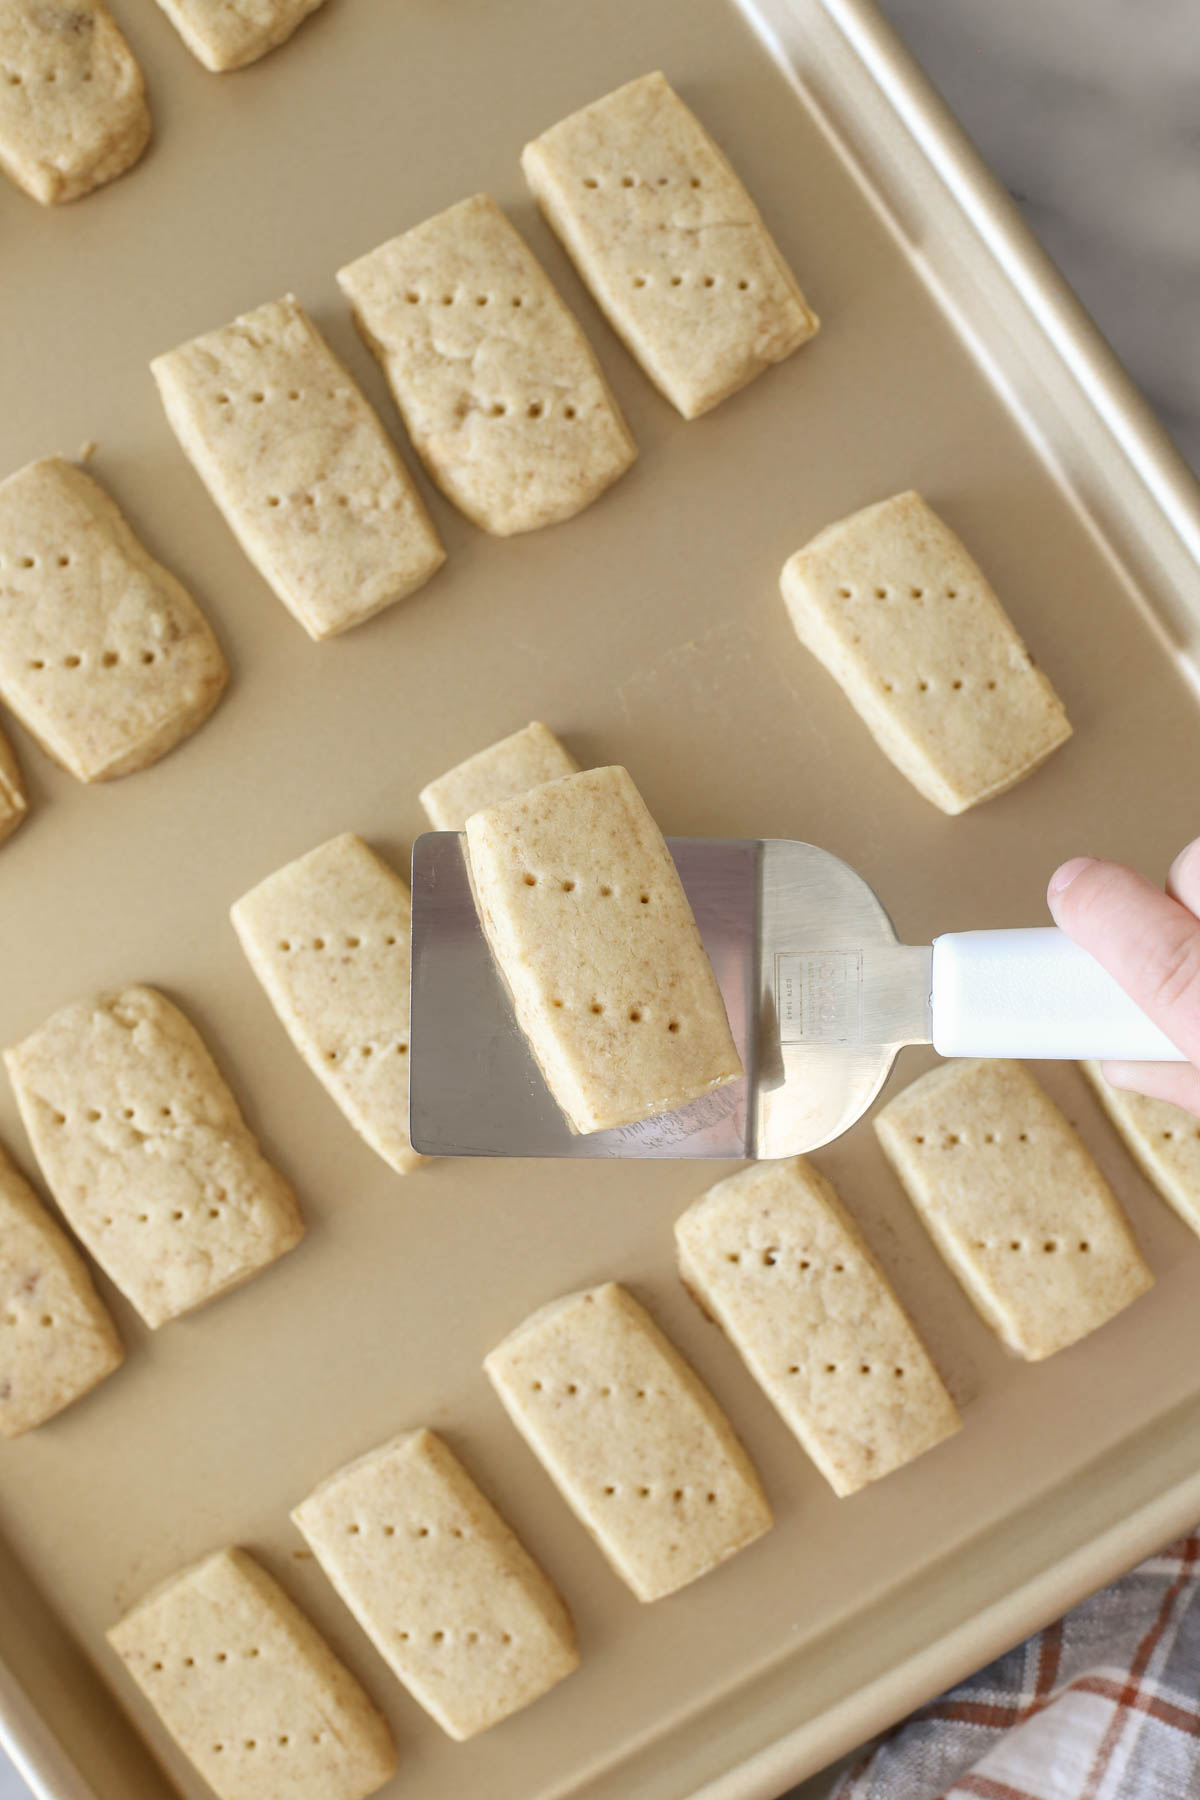 Overhead shot of a spatula with a Buttery Shortbread Cookie held over the baking sheet with more Buttery Shortbread Cookies.